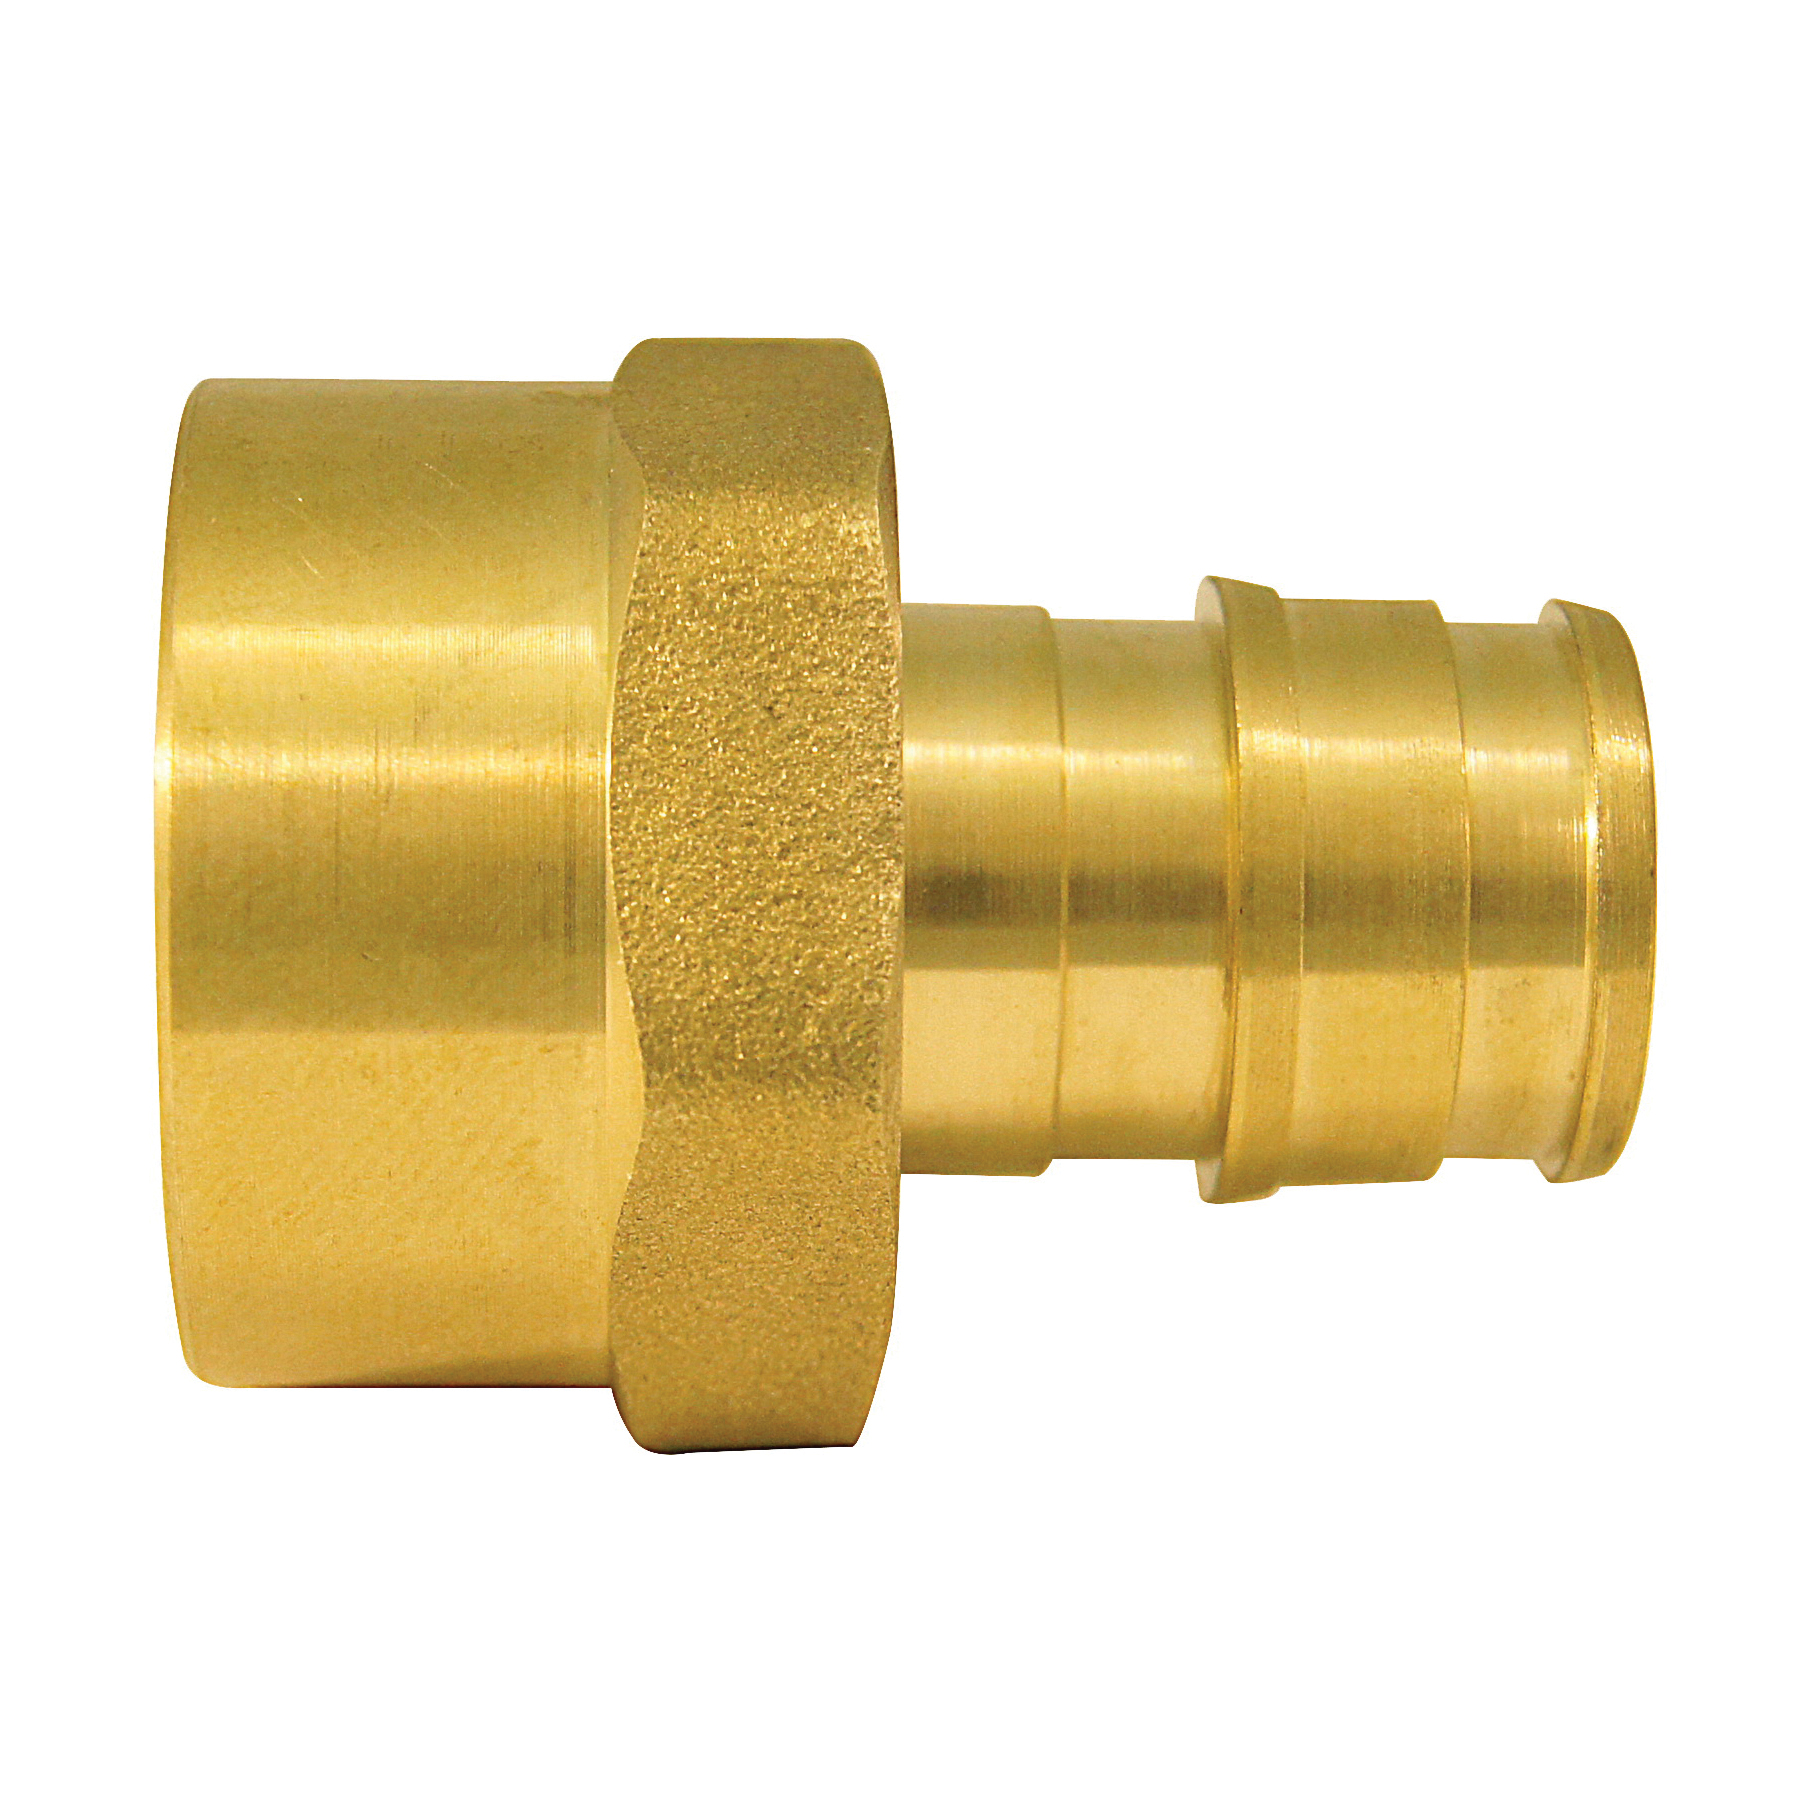 Picture of Apollo ExpansionPEX EPXFA1210PK Pipe Adapter, 1/2 in, Barb x FPT, Brass, 200 psi Pressure